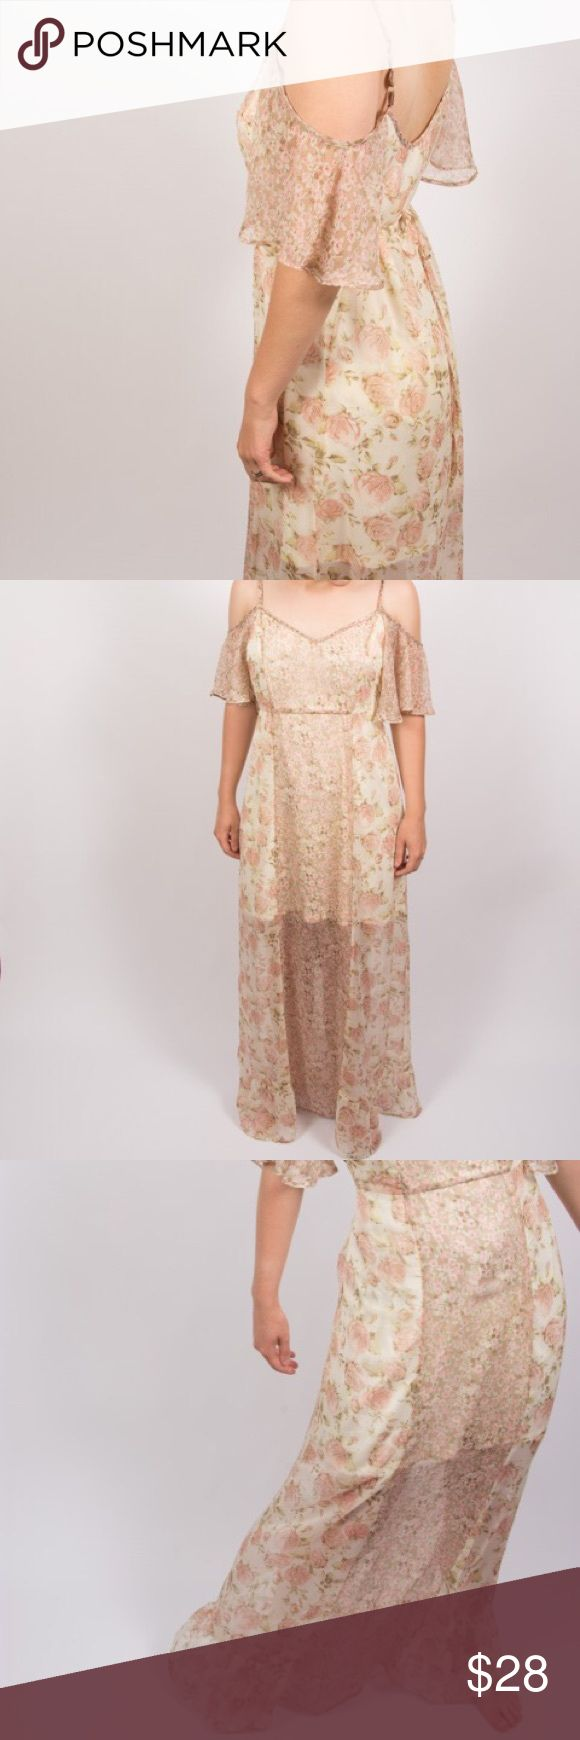 Band of Gypsies floral sheer dress Band of Gypsies Floral sheer dress. Sheer from knees to feet. A flowery dress that flows as you move. Gently used from non- smoking home. Band of Gypsies Dresses Maxi